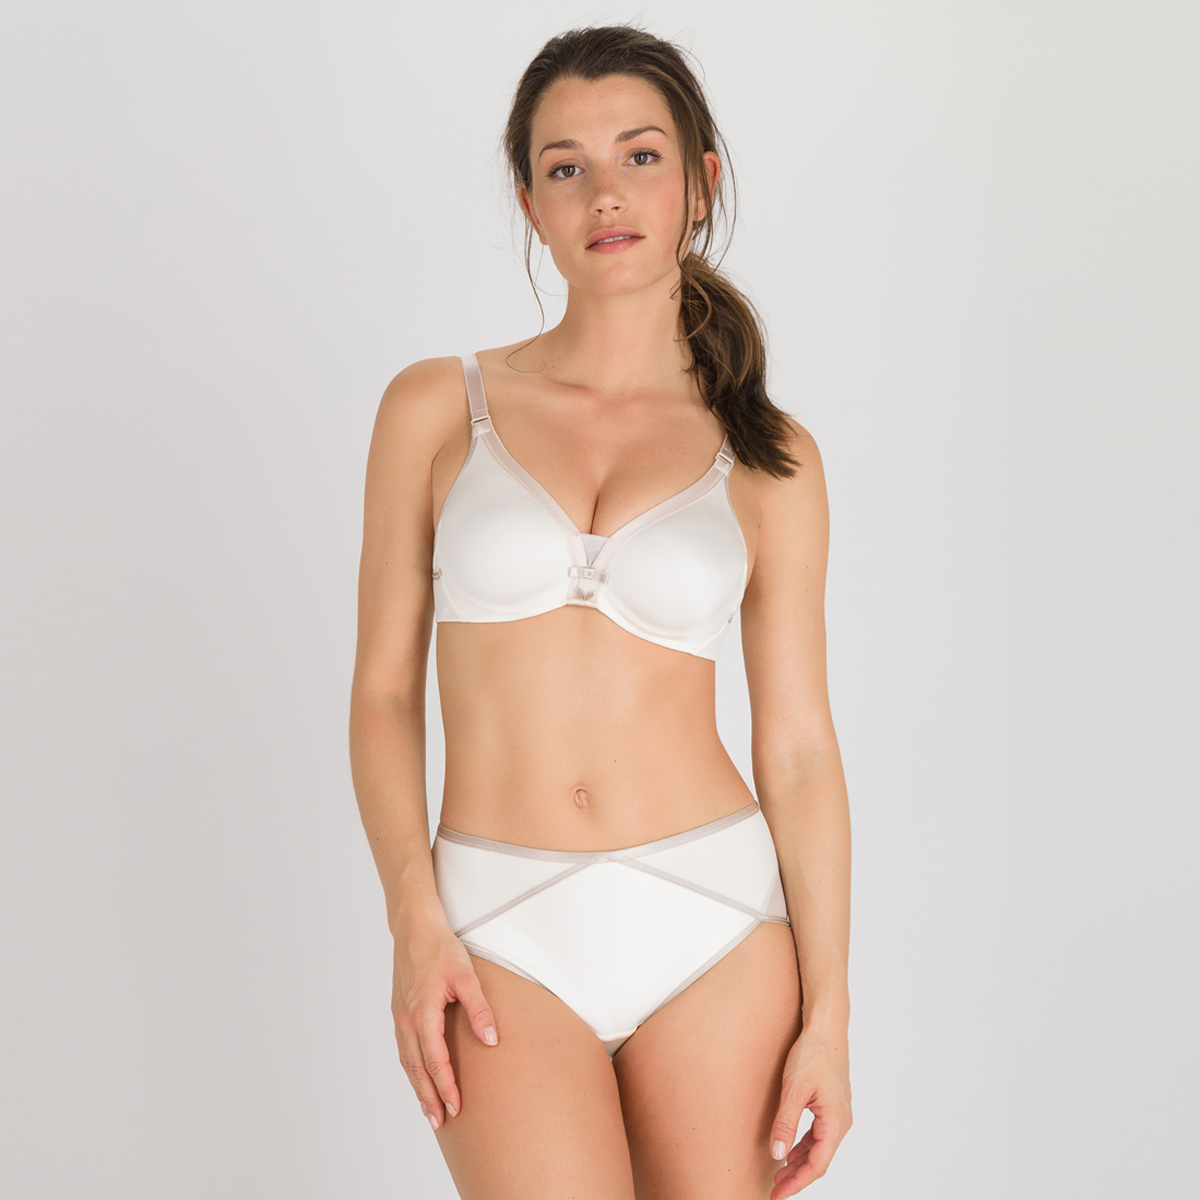 Soutien-gorge emboîtant nacre - Ideal Beauty, , PLAYTEX